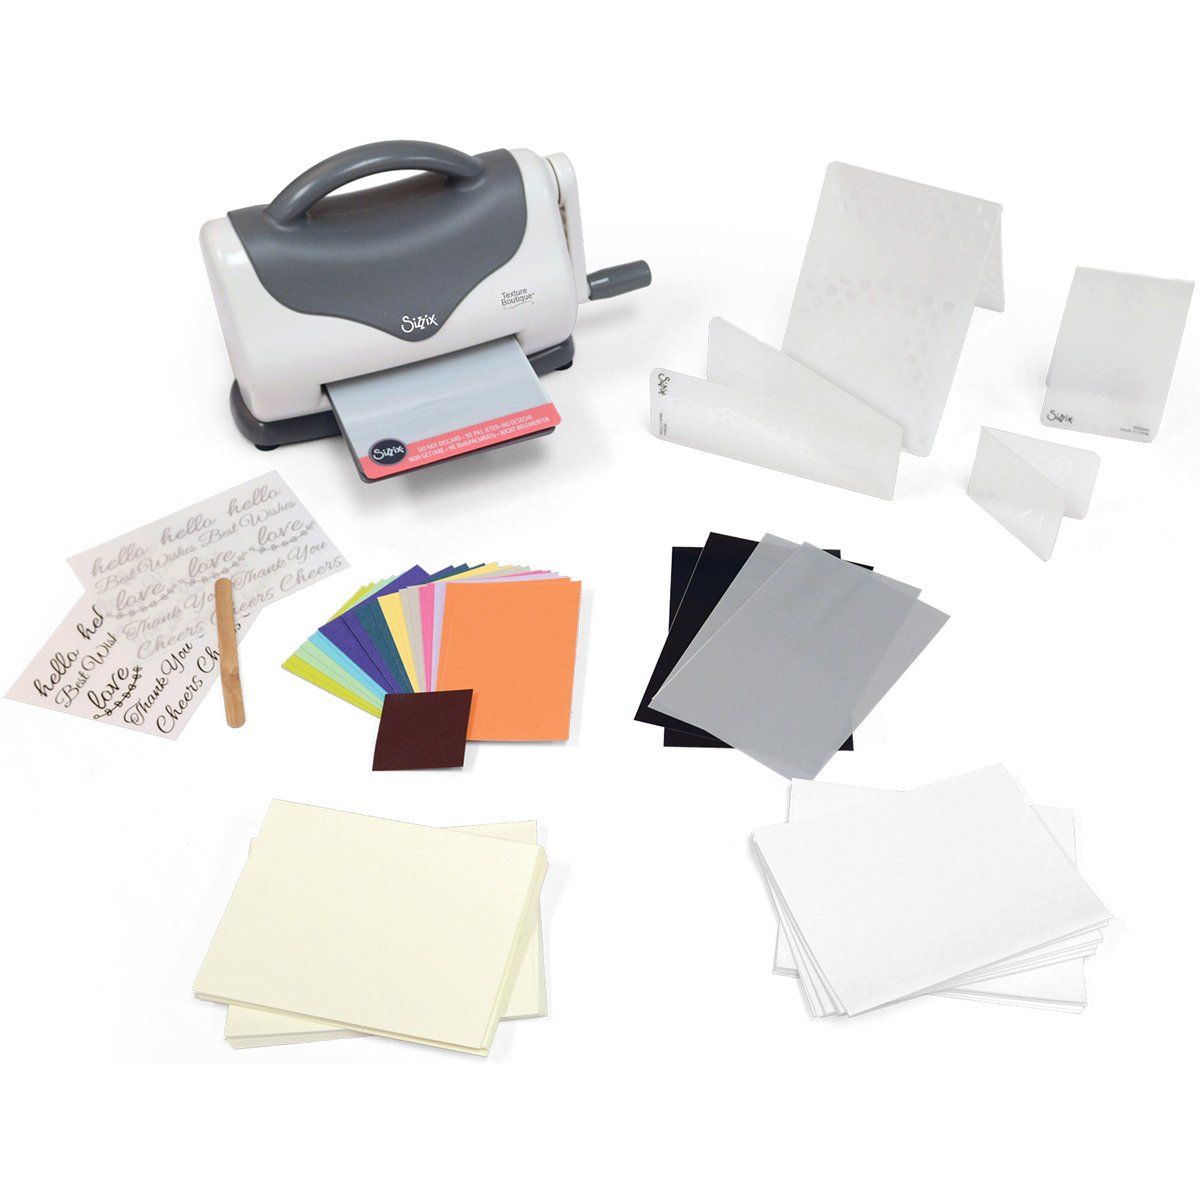 Sizzix Texture Boutique Starter Kit Manual Machine and Pair Pads Mylar Shim 4 1//2 in 11.43 cm Embossing Folders Cardstock and More Opening